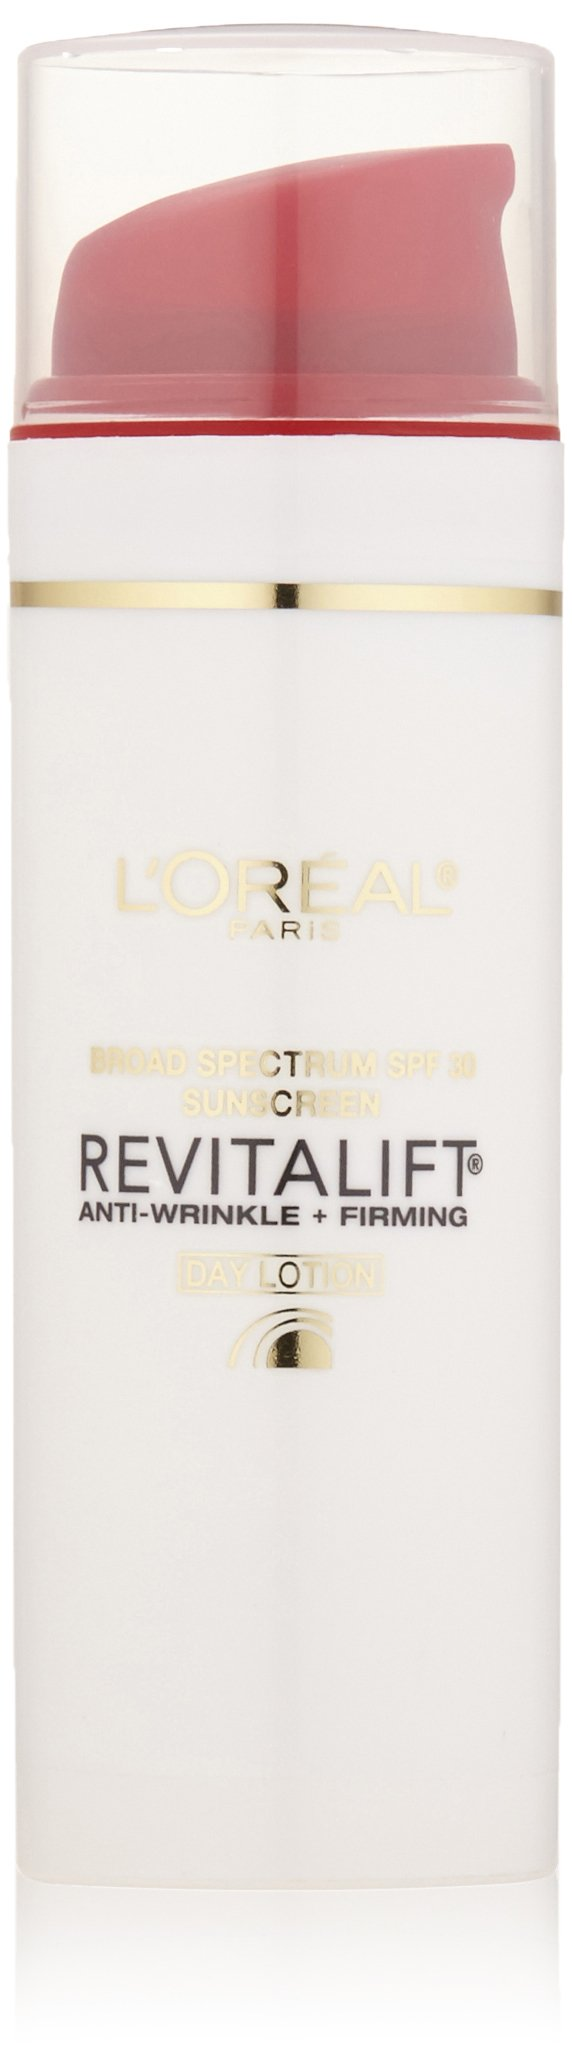 L'Oreal Paris RevitaLift Anti Wrinkle + Firming Facial Day Lotion SPF 30